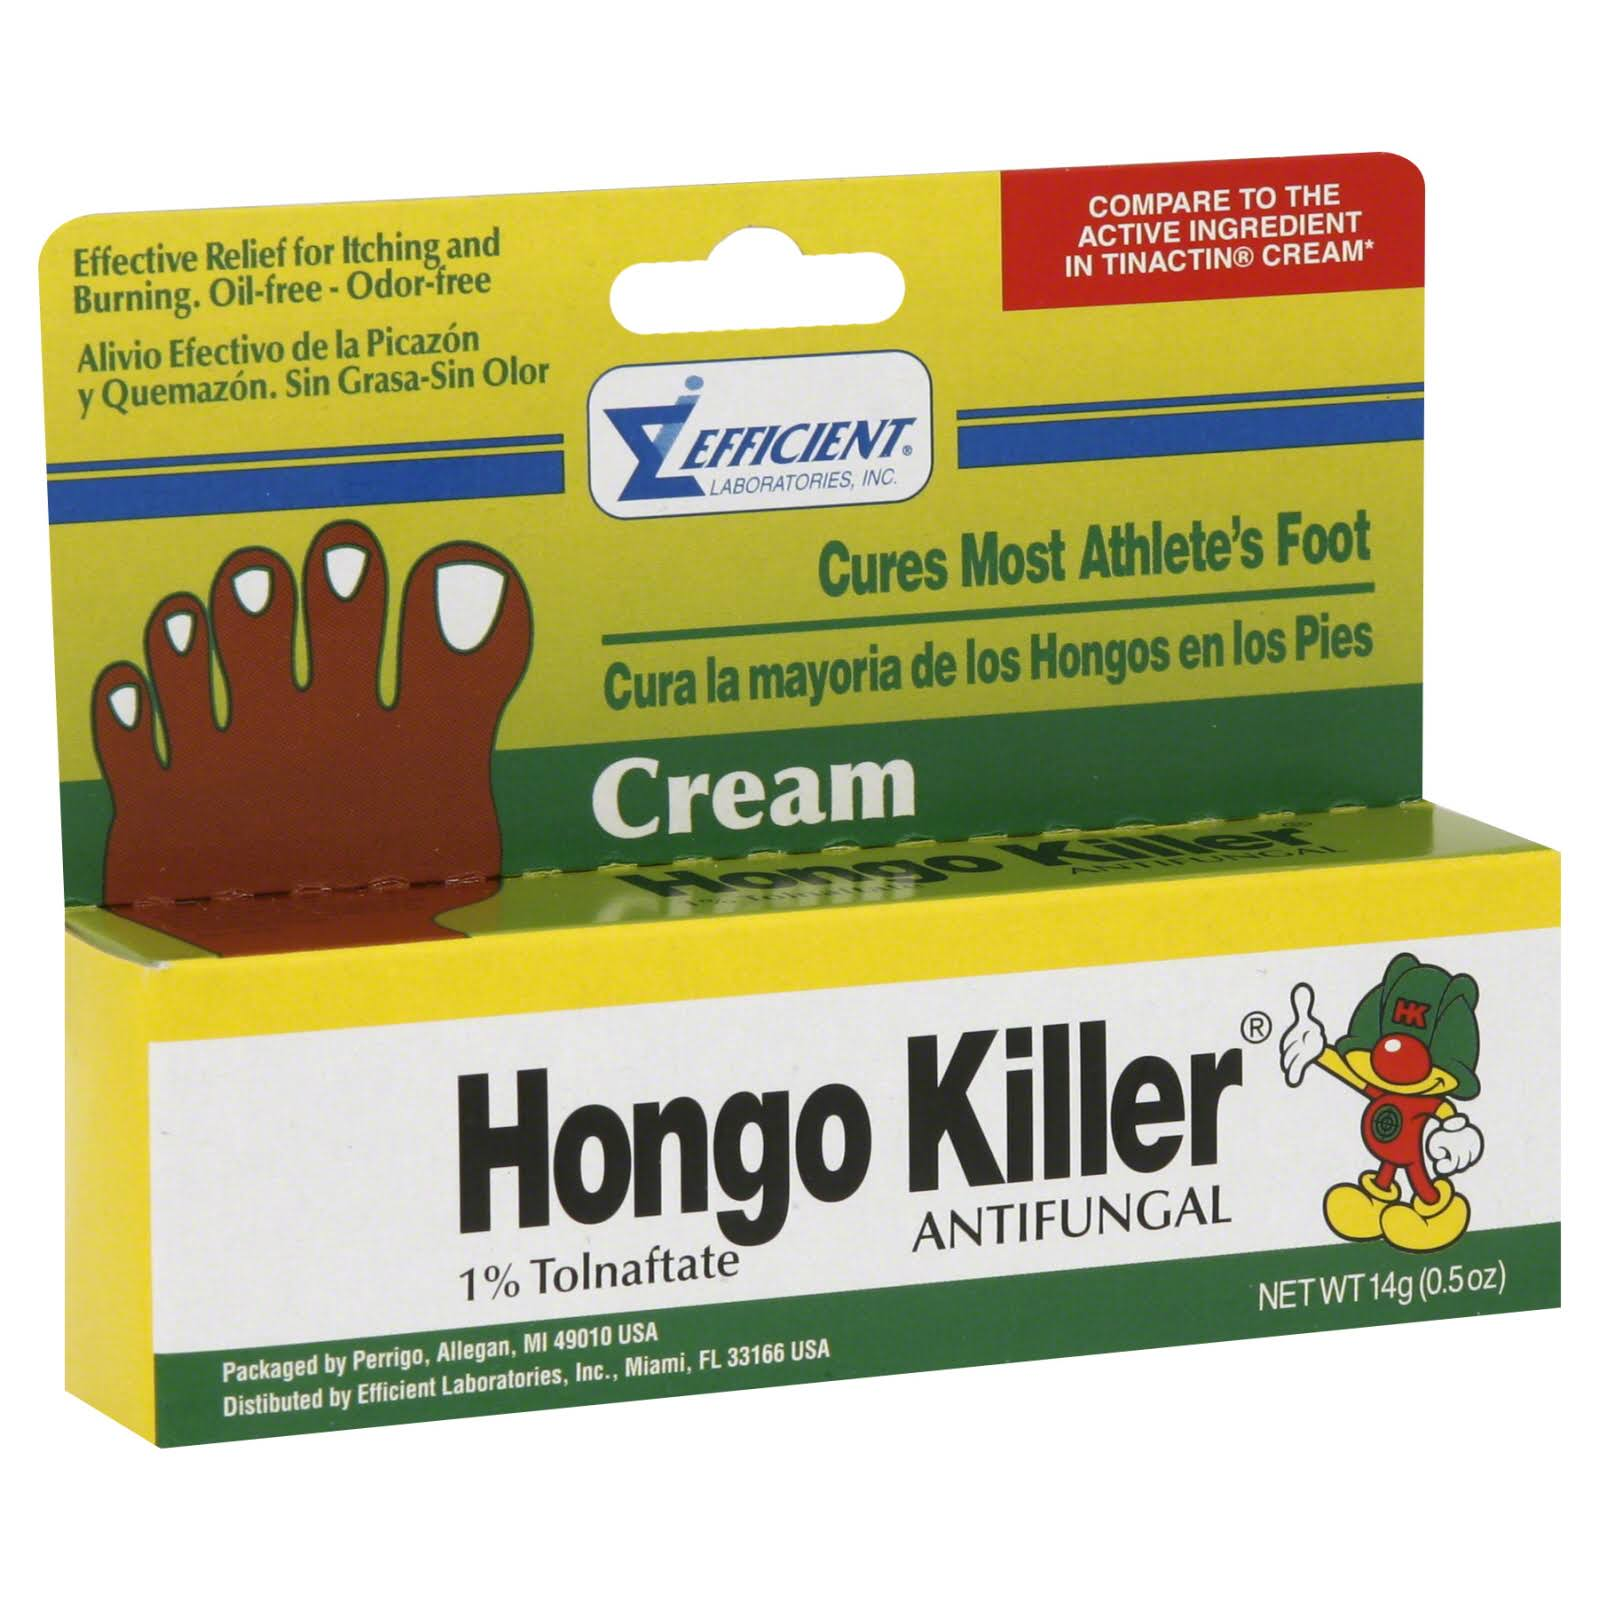 Hongo Killer Antifungal Cream - 0.50oz